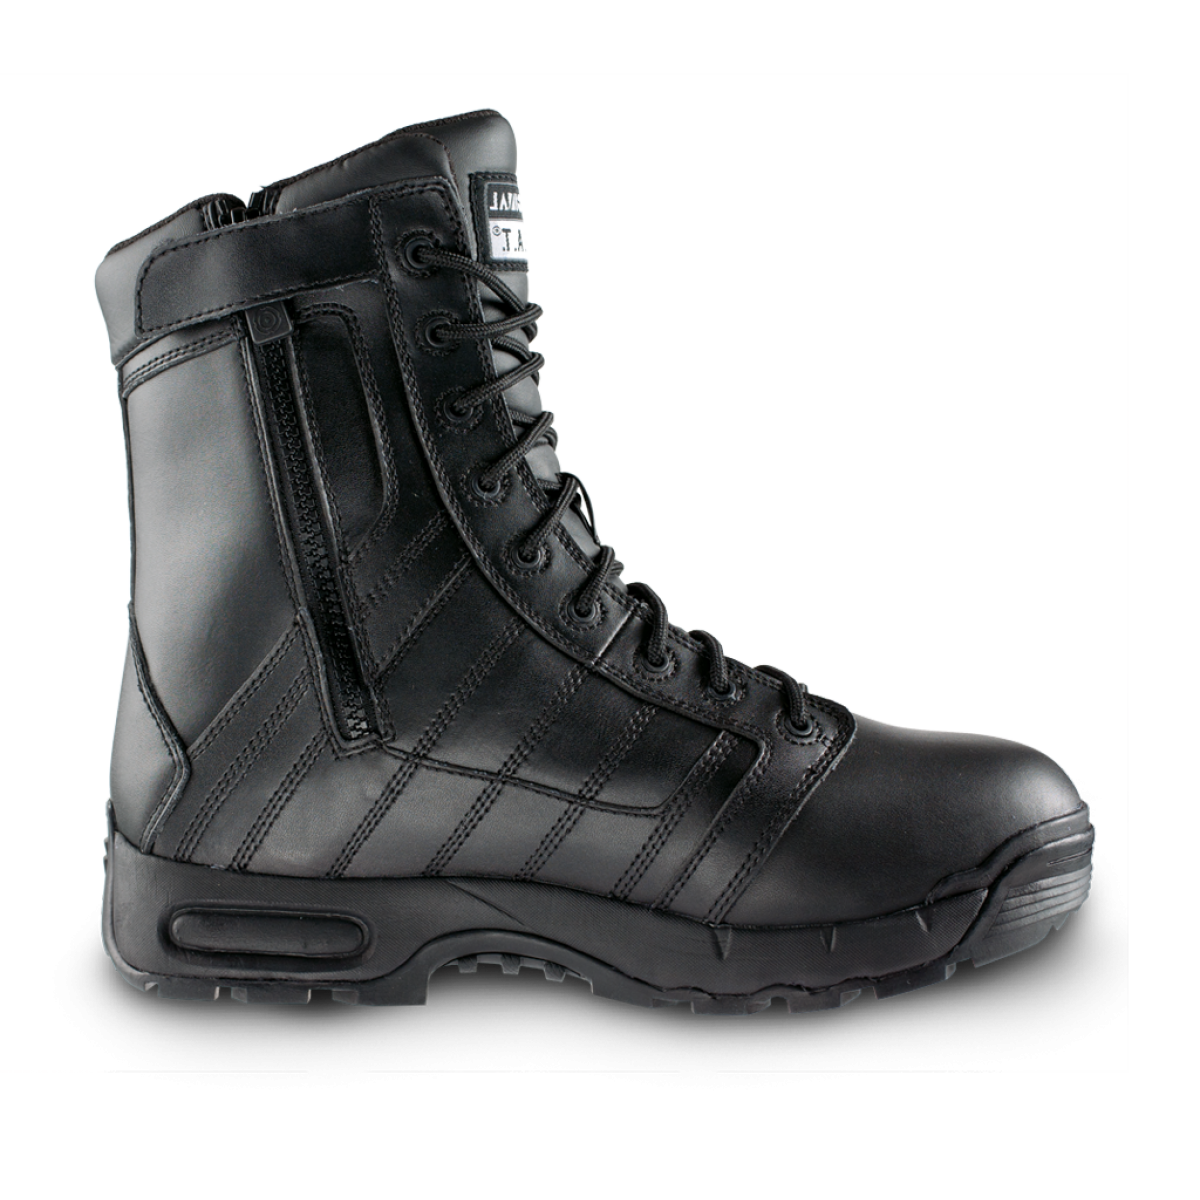 banner library stock Png images free download. Boots clipart motorcycle boot